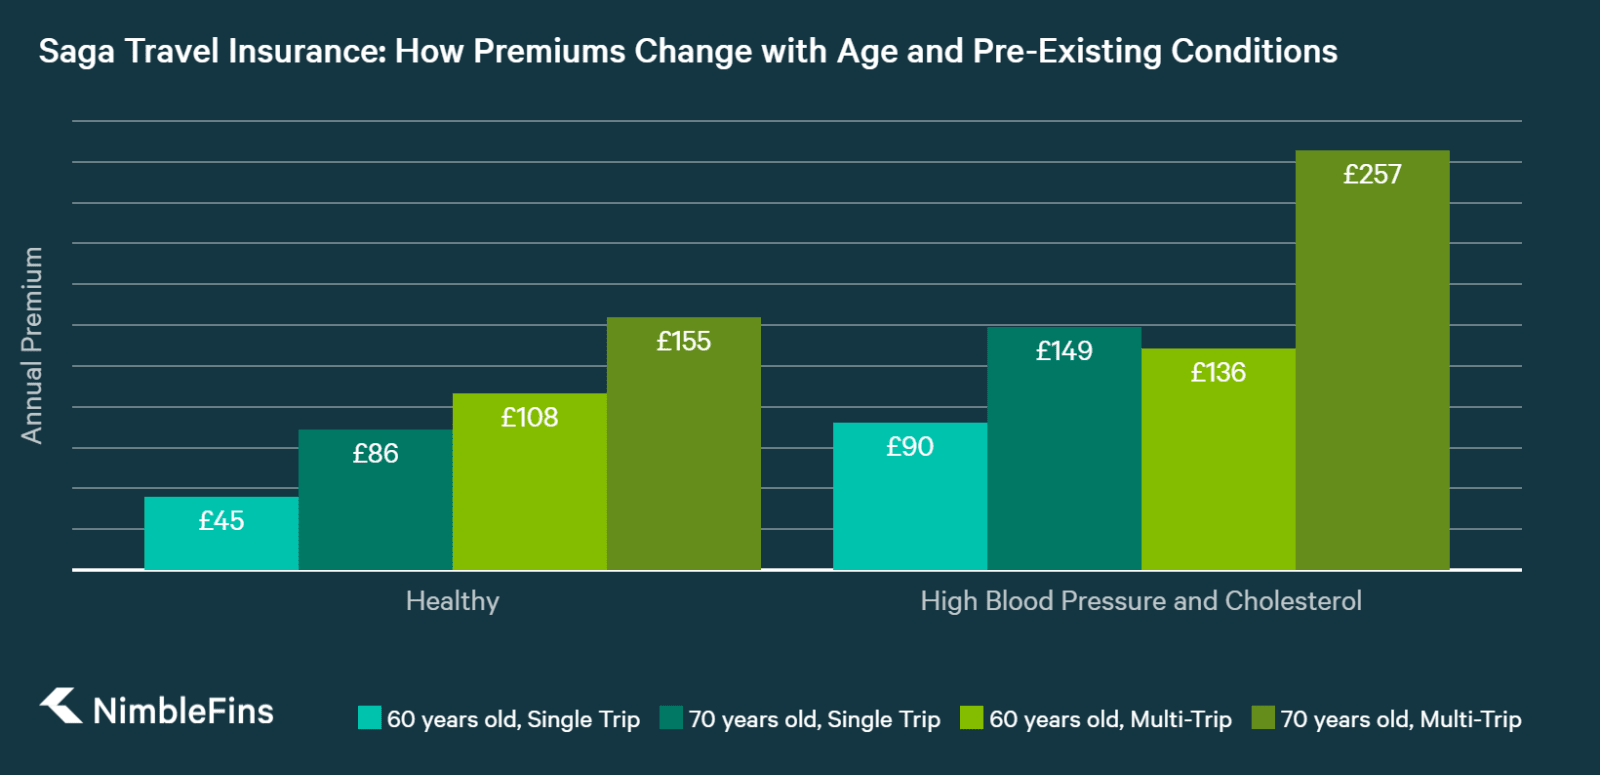 chart showing how the cost of Winter Sports travel insurance with Saga increases for Older Travellers